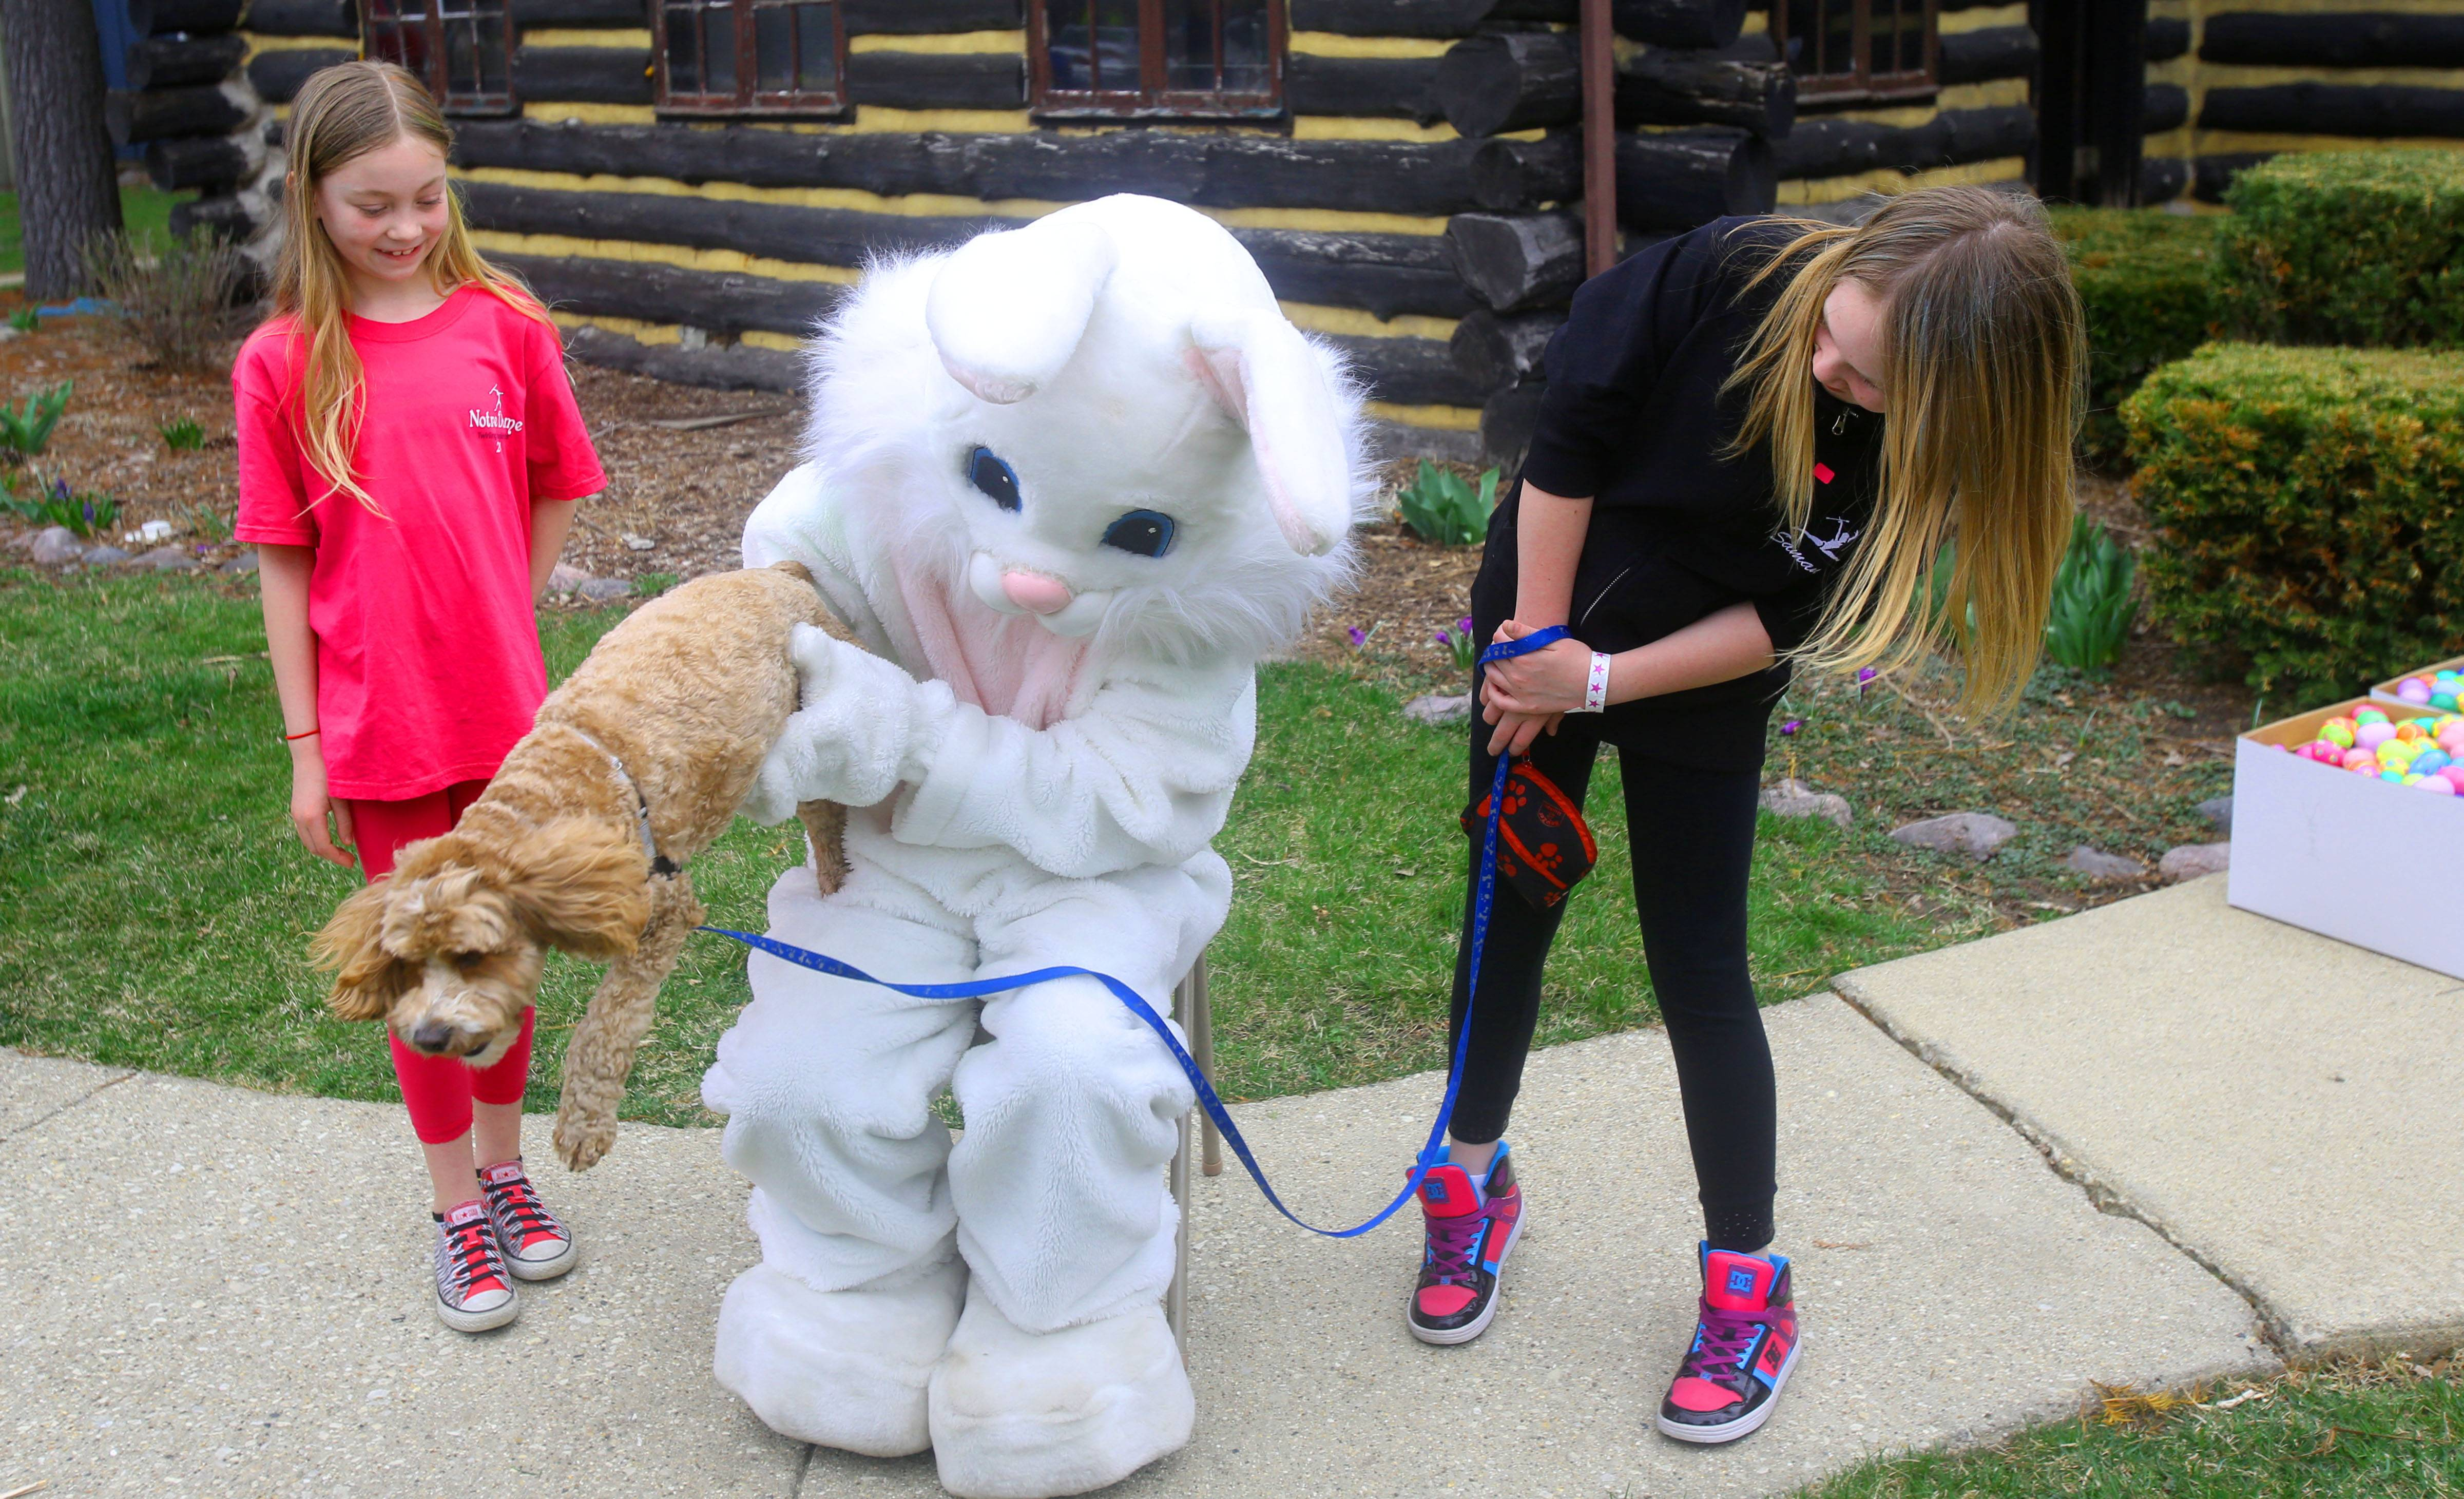 Scooby escapes the Easter Bunny's grasp Sunday during the sixth annual Doggie Egg Hunt at the Cabin Nature Center White Oaks Dog Park in Wood Dale. Tiffany and Samantha Zaremba watch their dog jump down.